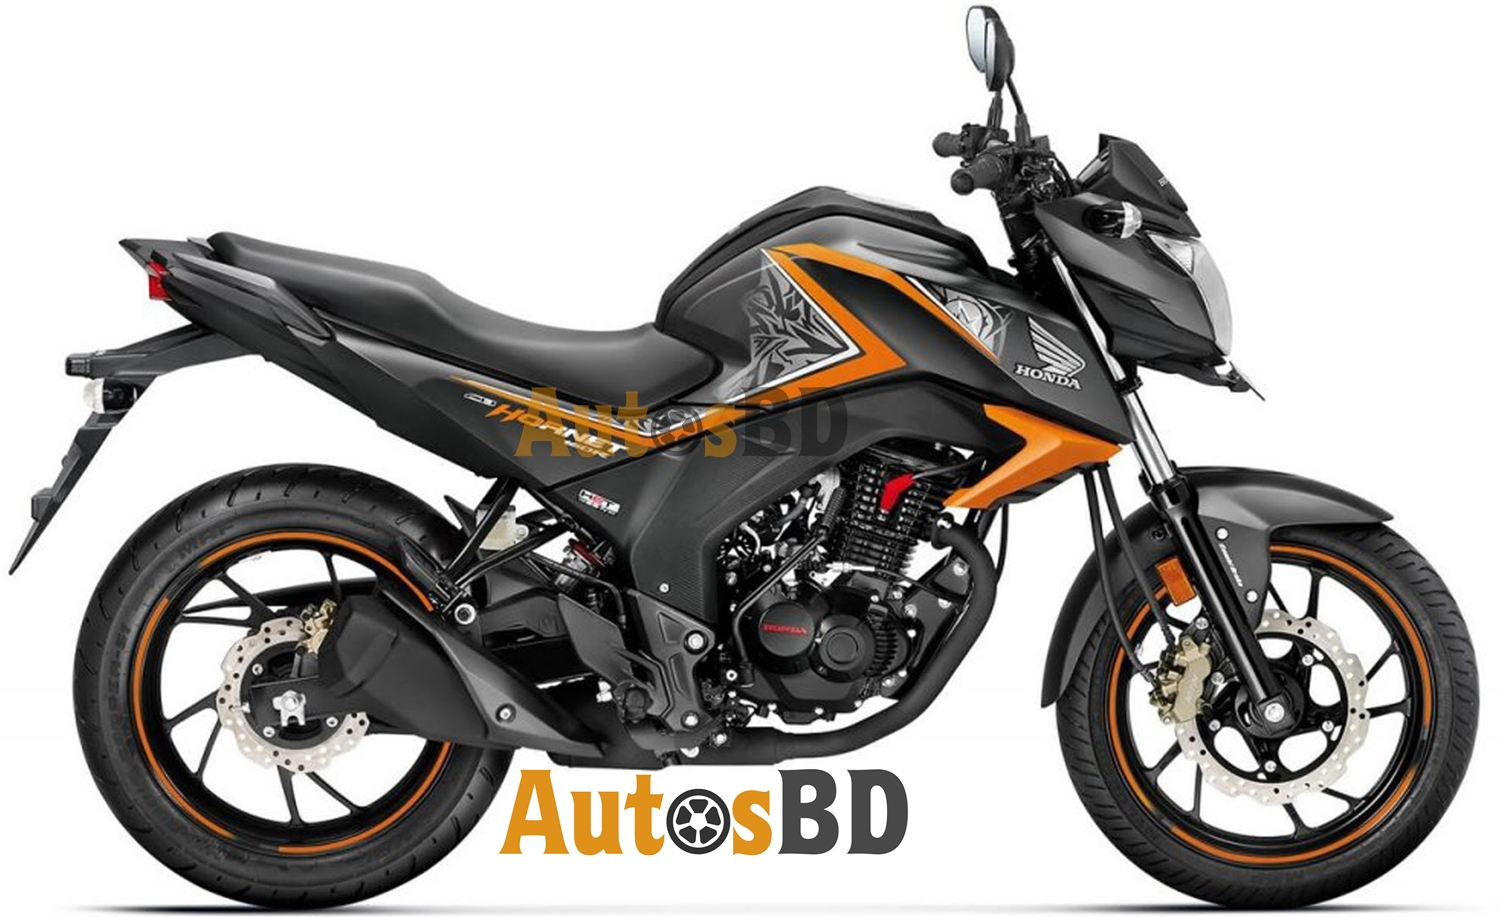 Honda CB Hornet 160R Special Edition STD Motorcycle Price in Bangladesh